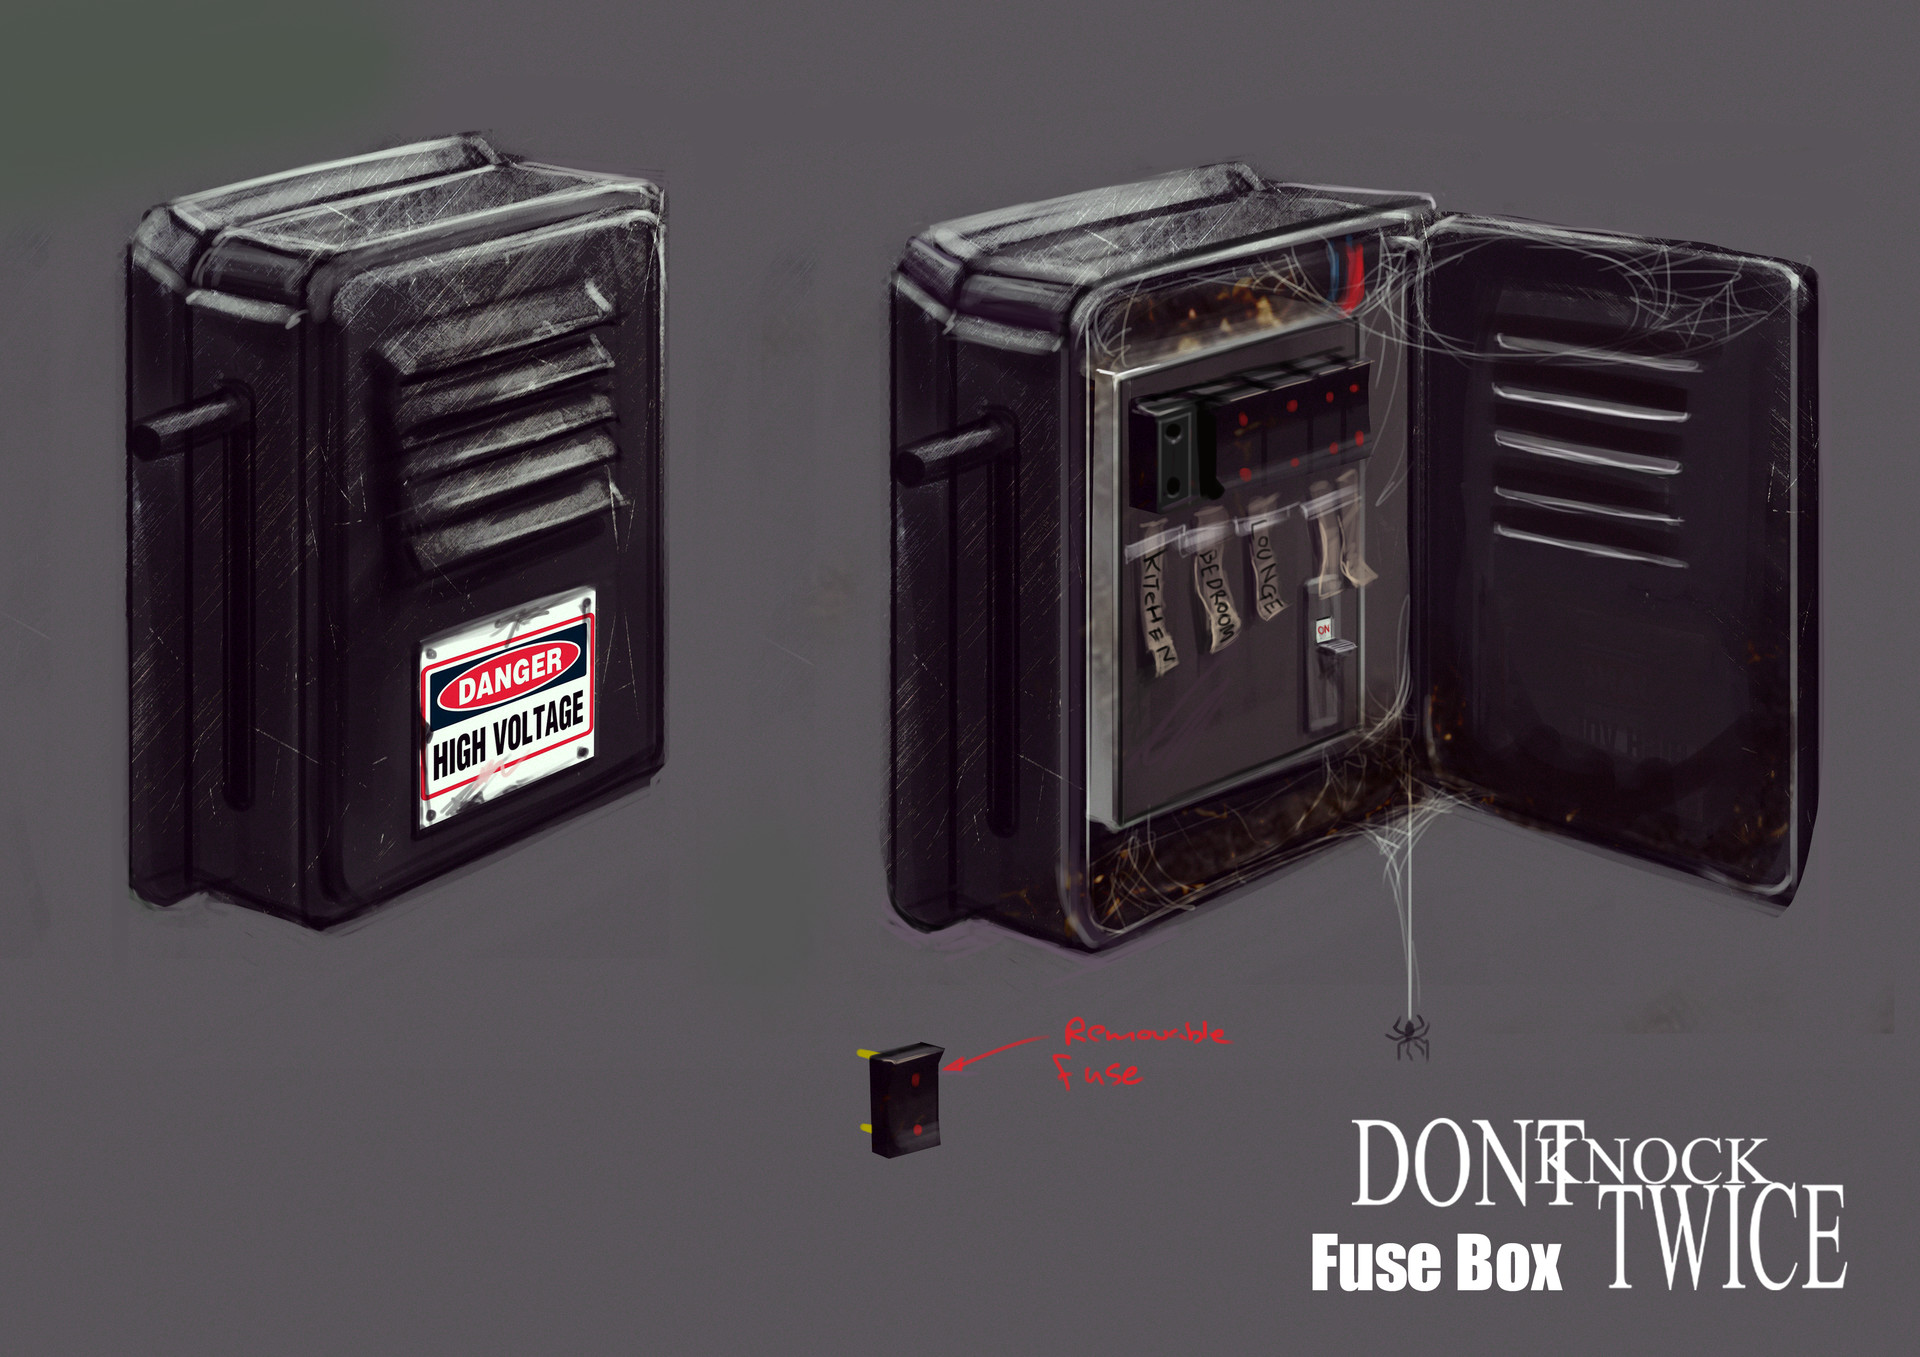 hight resolution of fuse box that the player would interact with